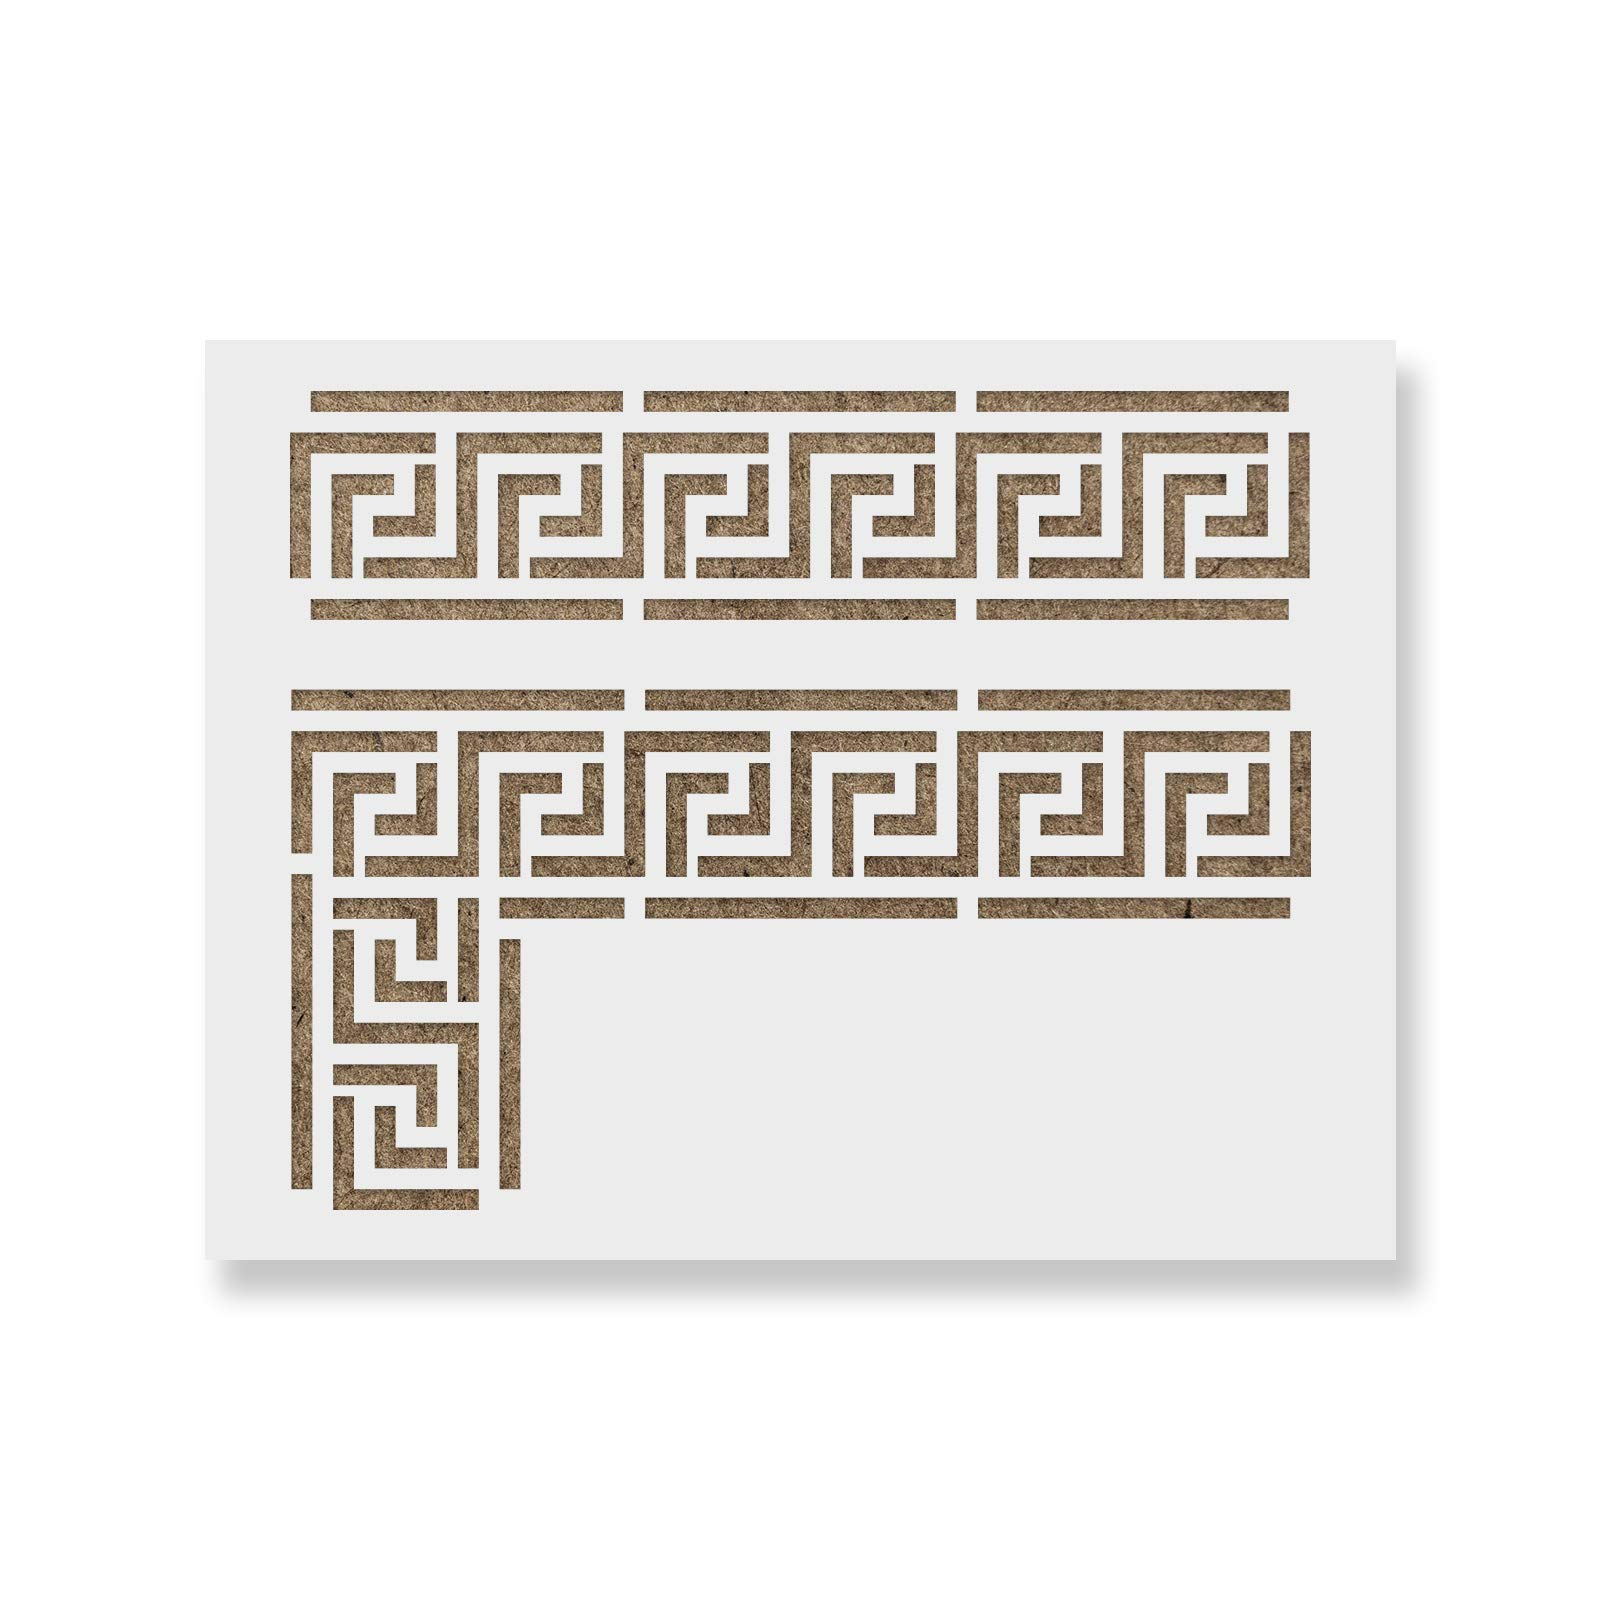 Greek Key Stencil Template for Walls and Crafts - Reusable Stencils for Painting in Small & Large Sizes